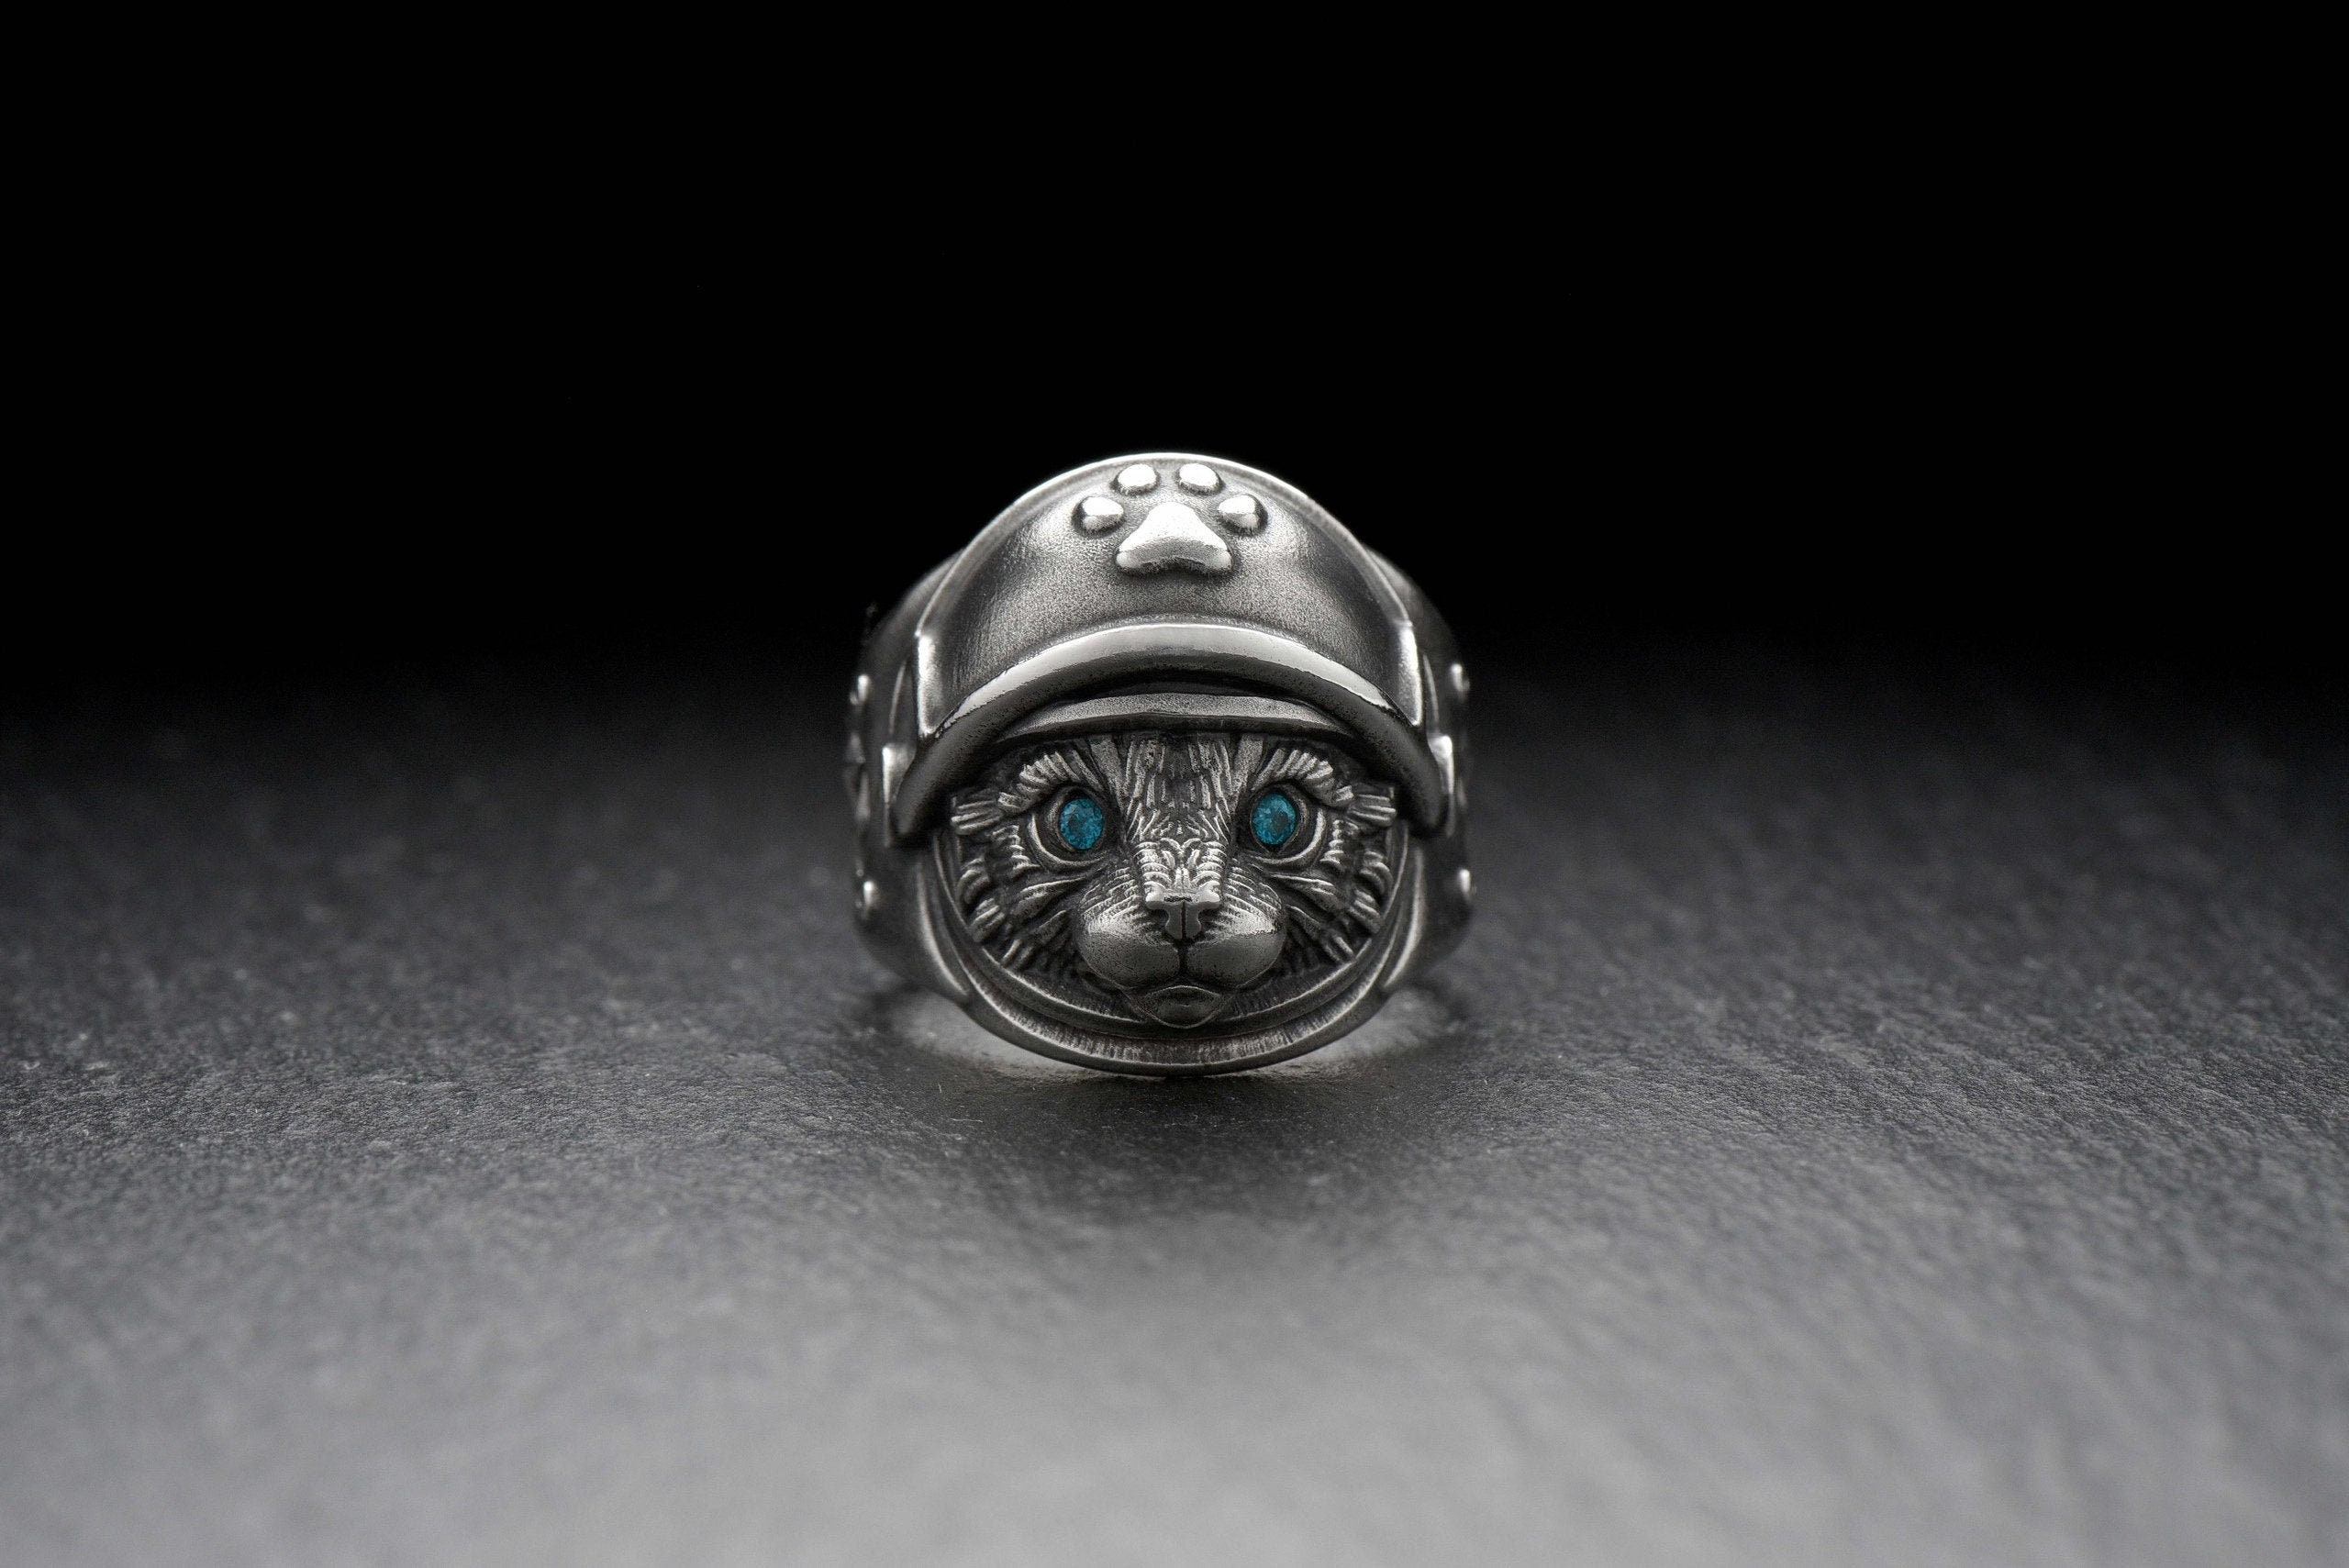 Christmas Adorable Cat Ring Adjustable Gift For Birthday Gifts For Her Cat Lover Silver Cat Ring